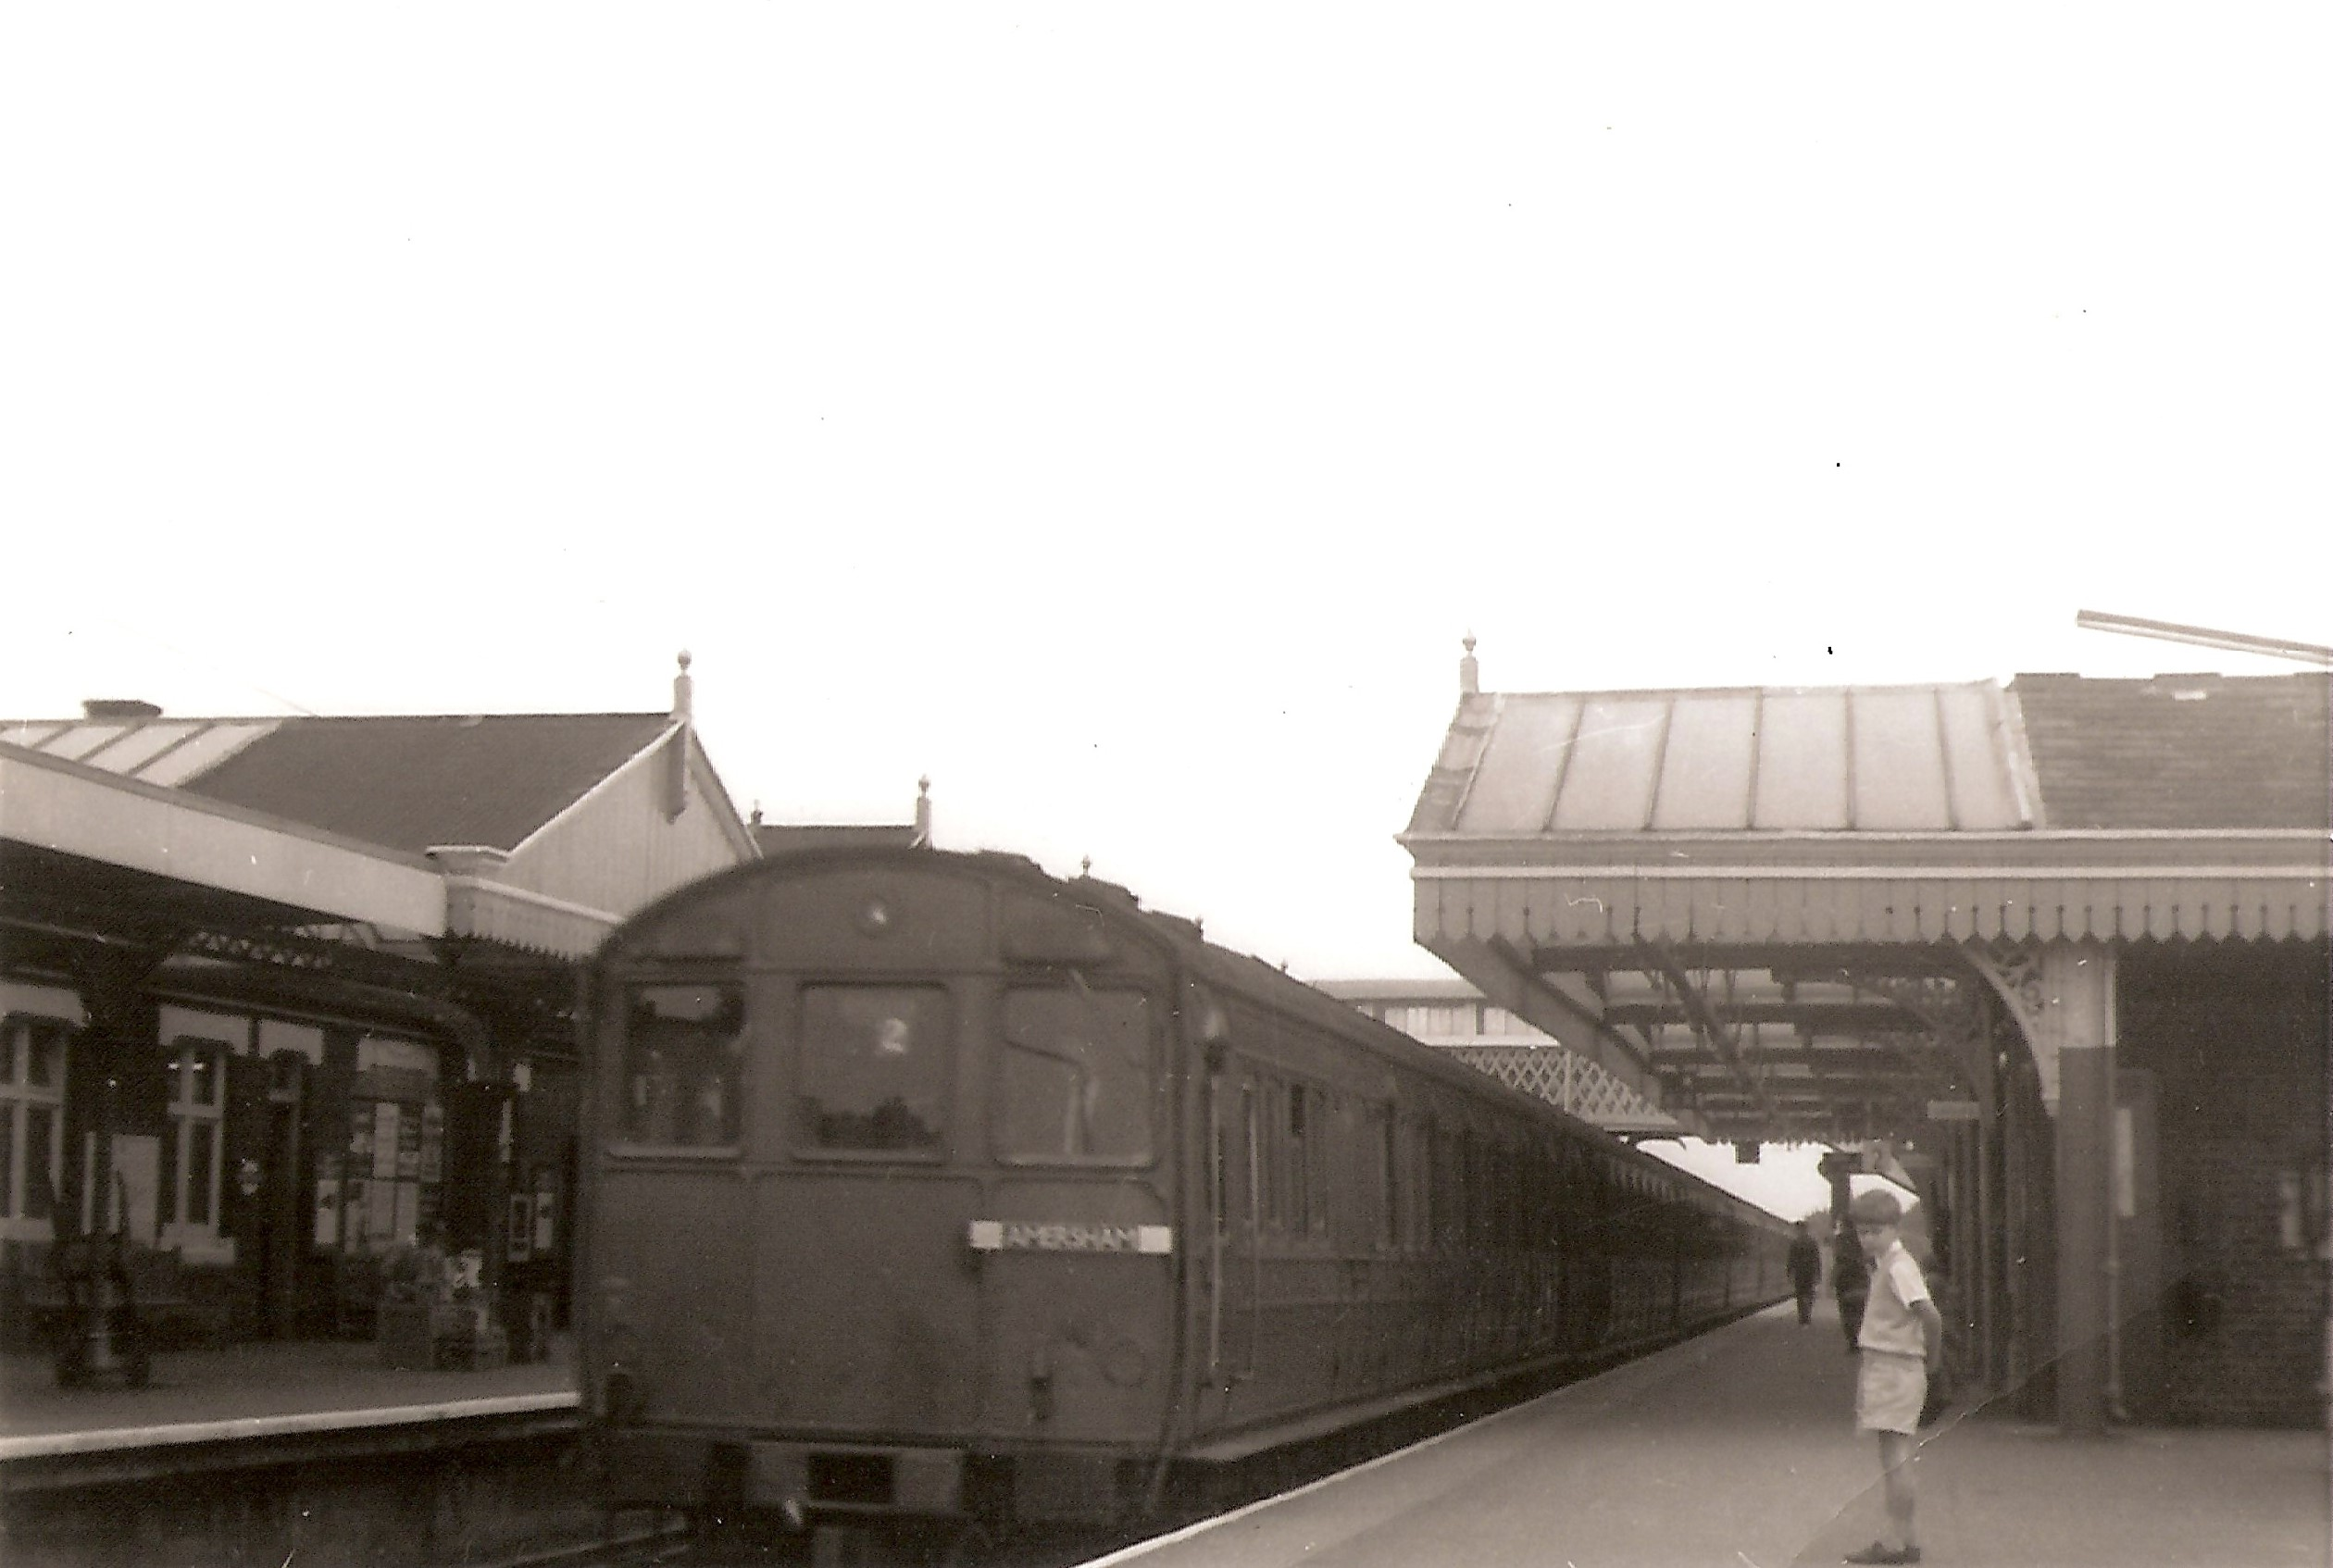 T Stock at Amersham and Chalfont & Latimer on 10th September 1961